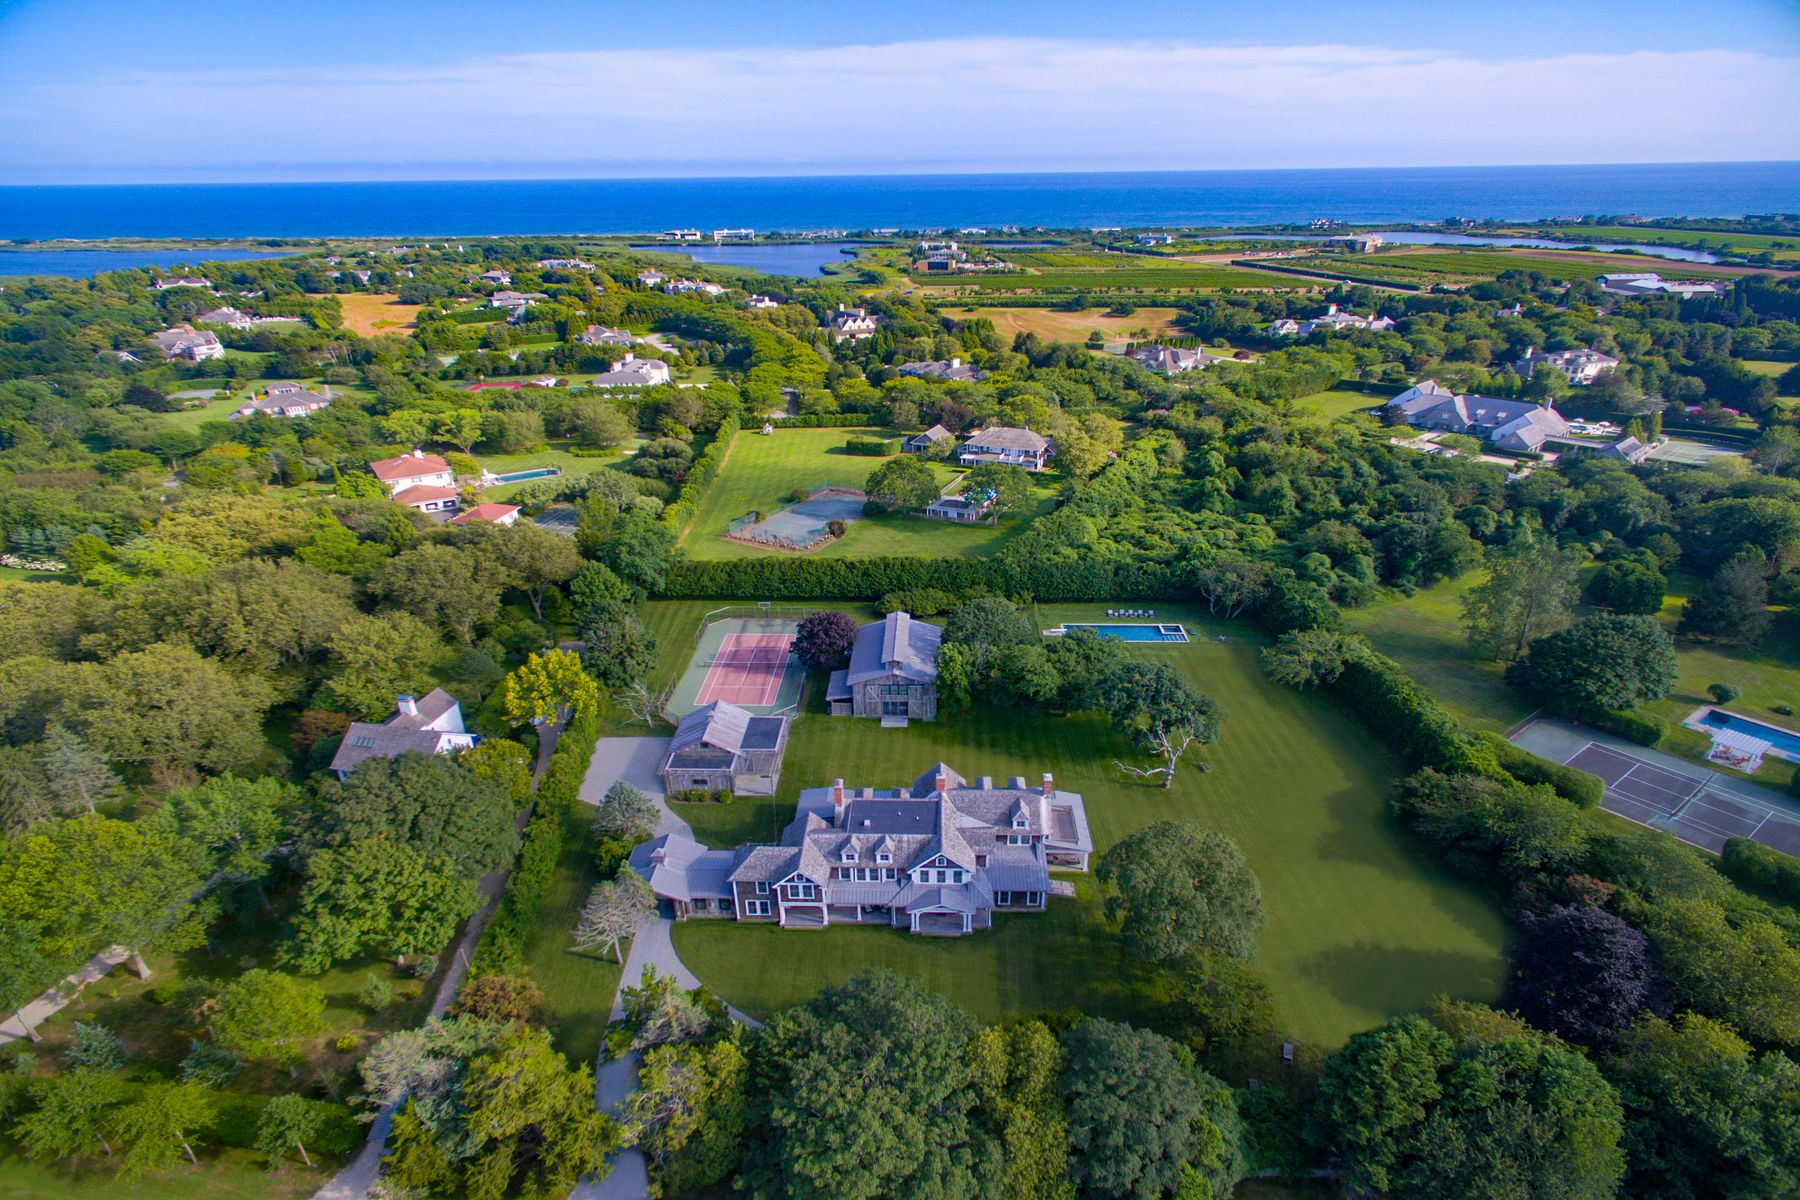 Property for Sale at Flying Point Compound, Pool and Tennis 475 Flying Point Road Water Mill, New York 11976 United States